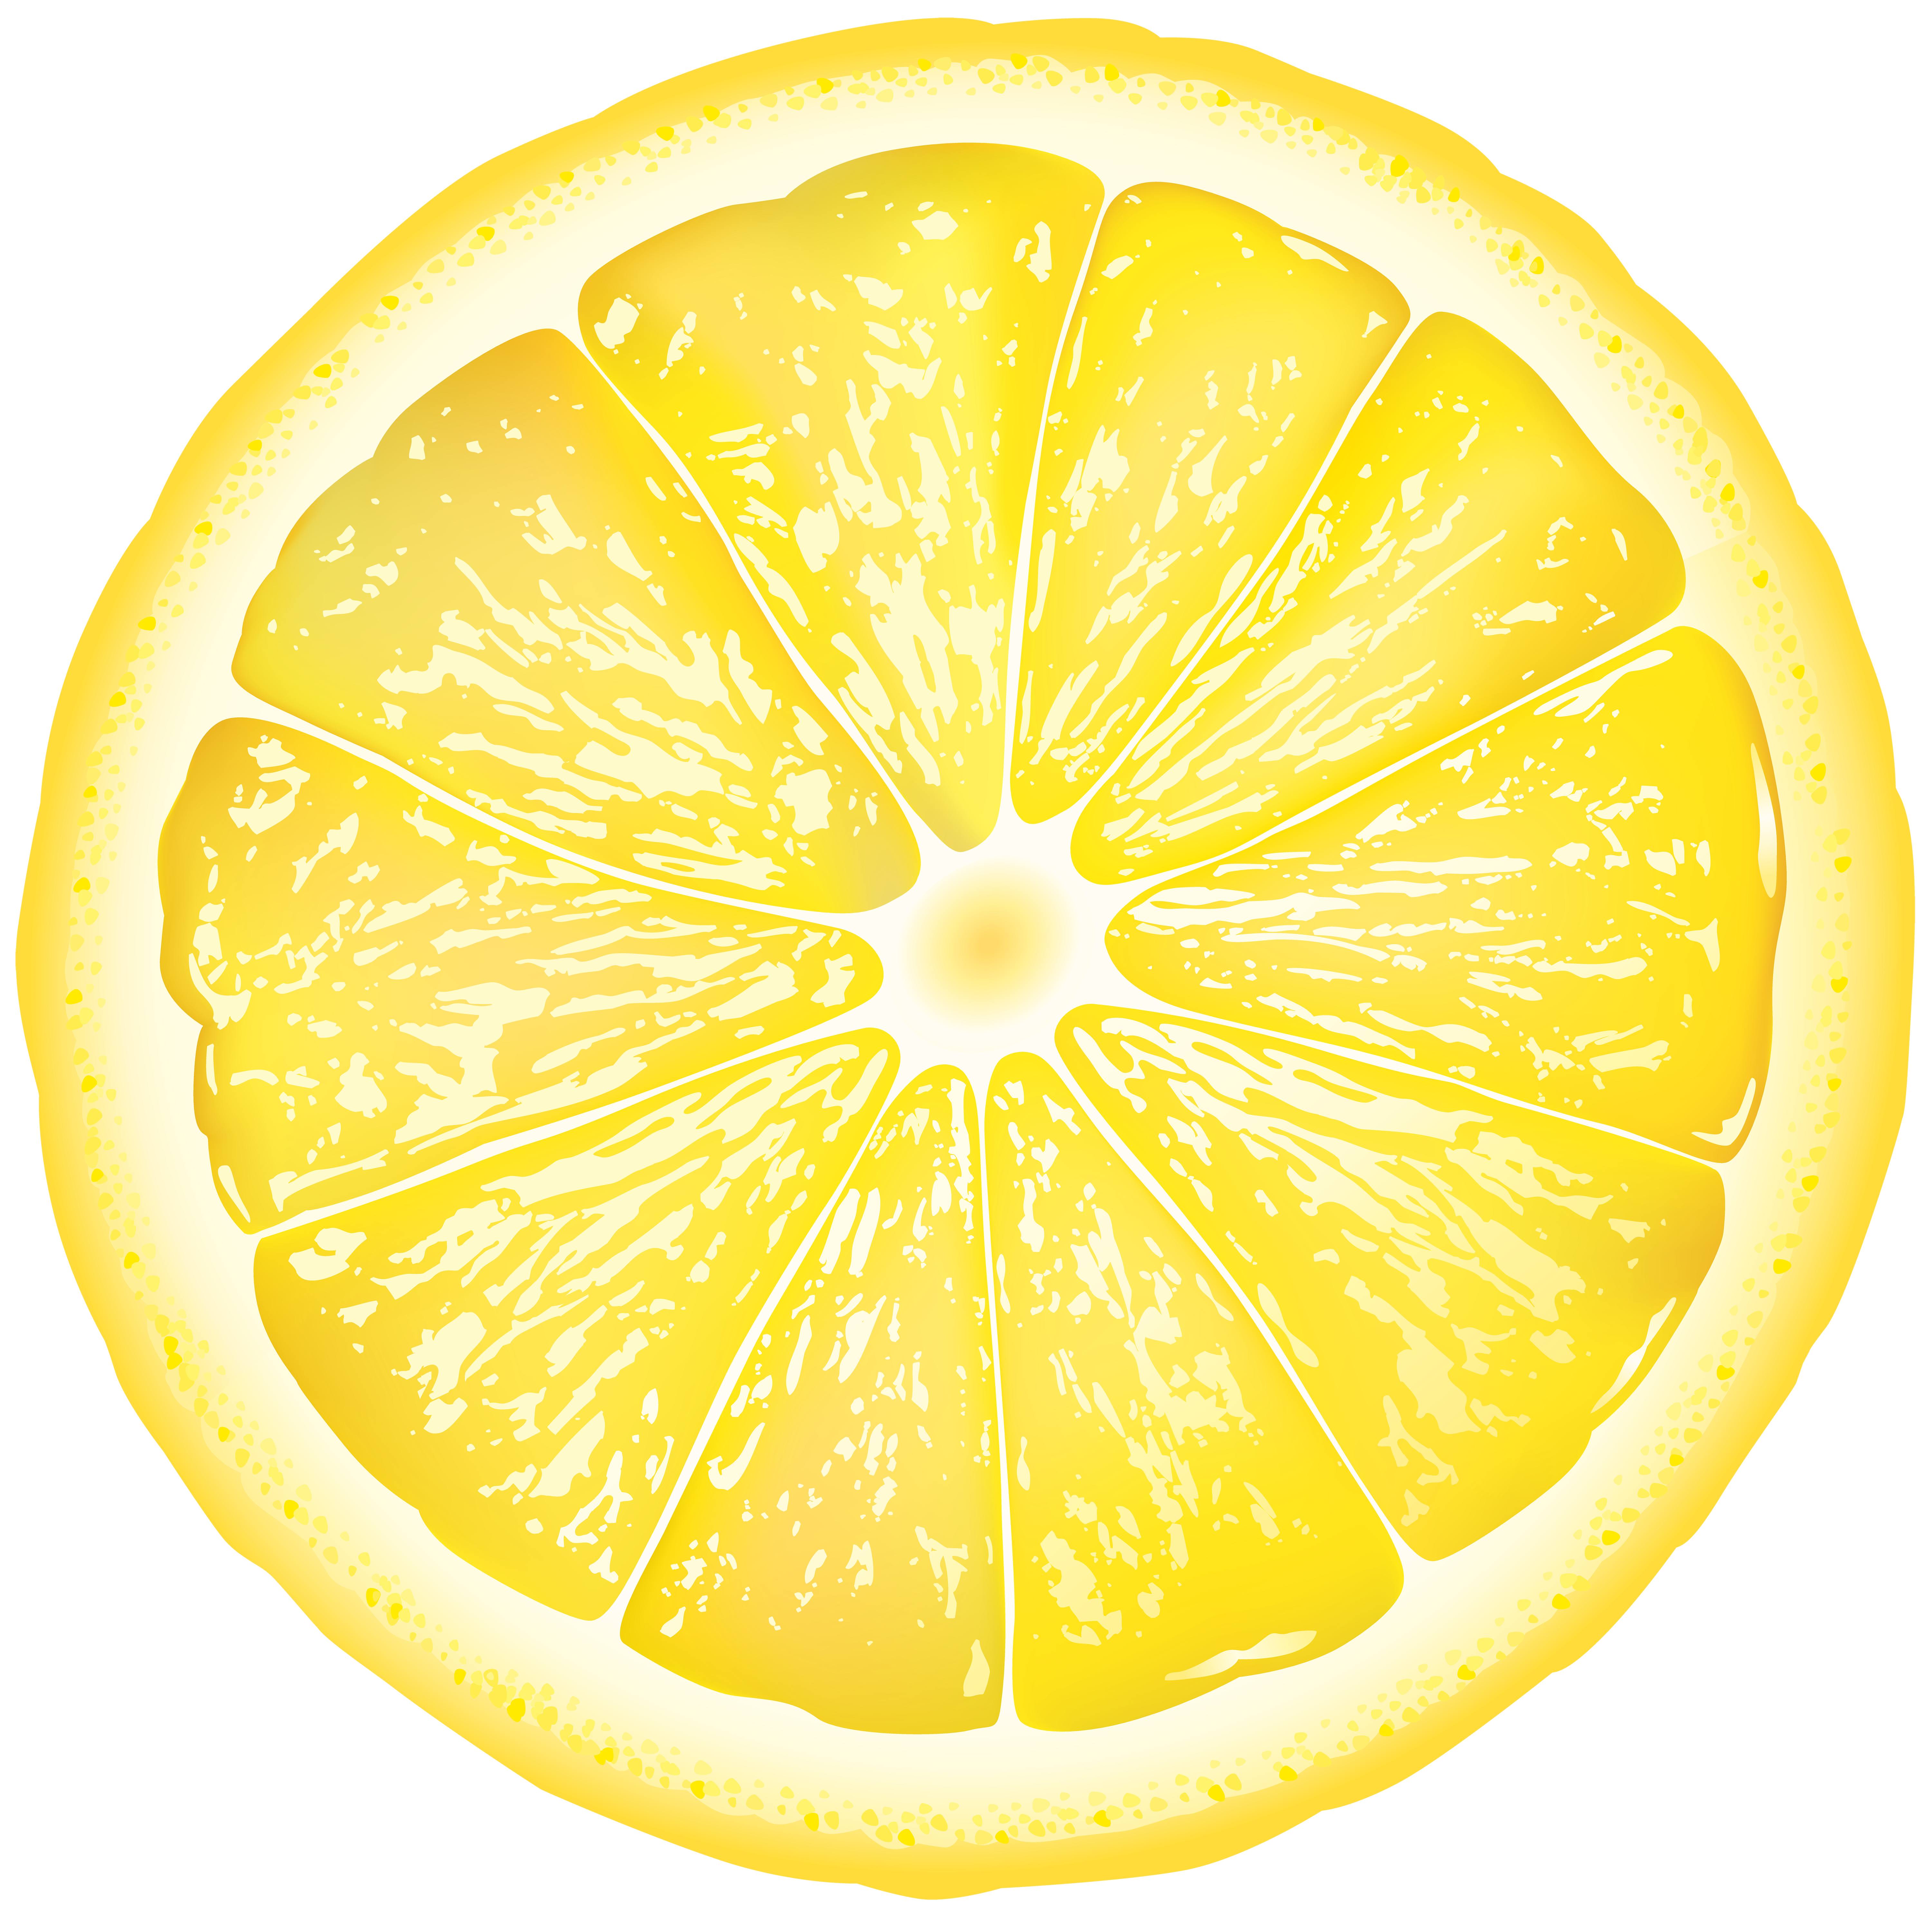 Lemon Slices Png & Free Lemon Slices.png Transparent Images.